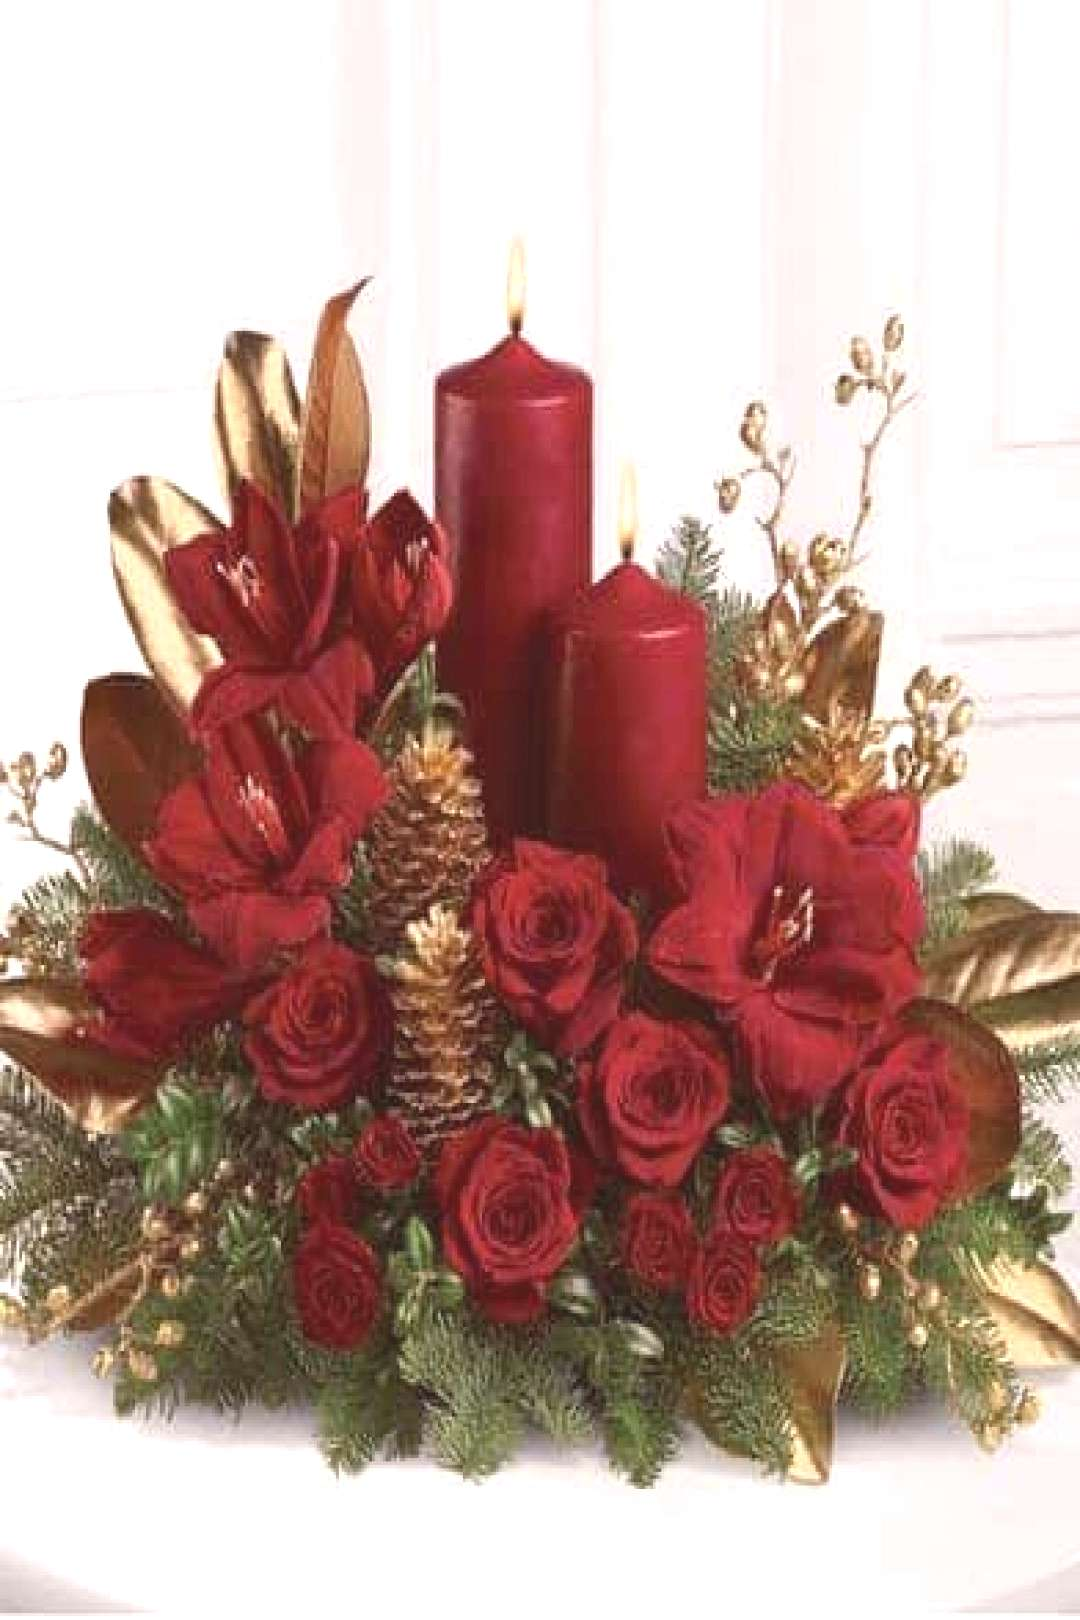 Beautiful, elegant and cozy Christmas centerpiece ideas to decorate your home for the holiday seaso